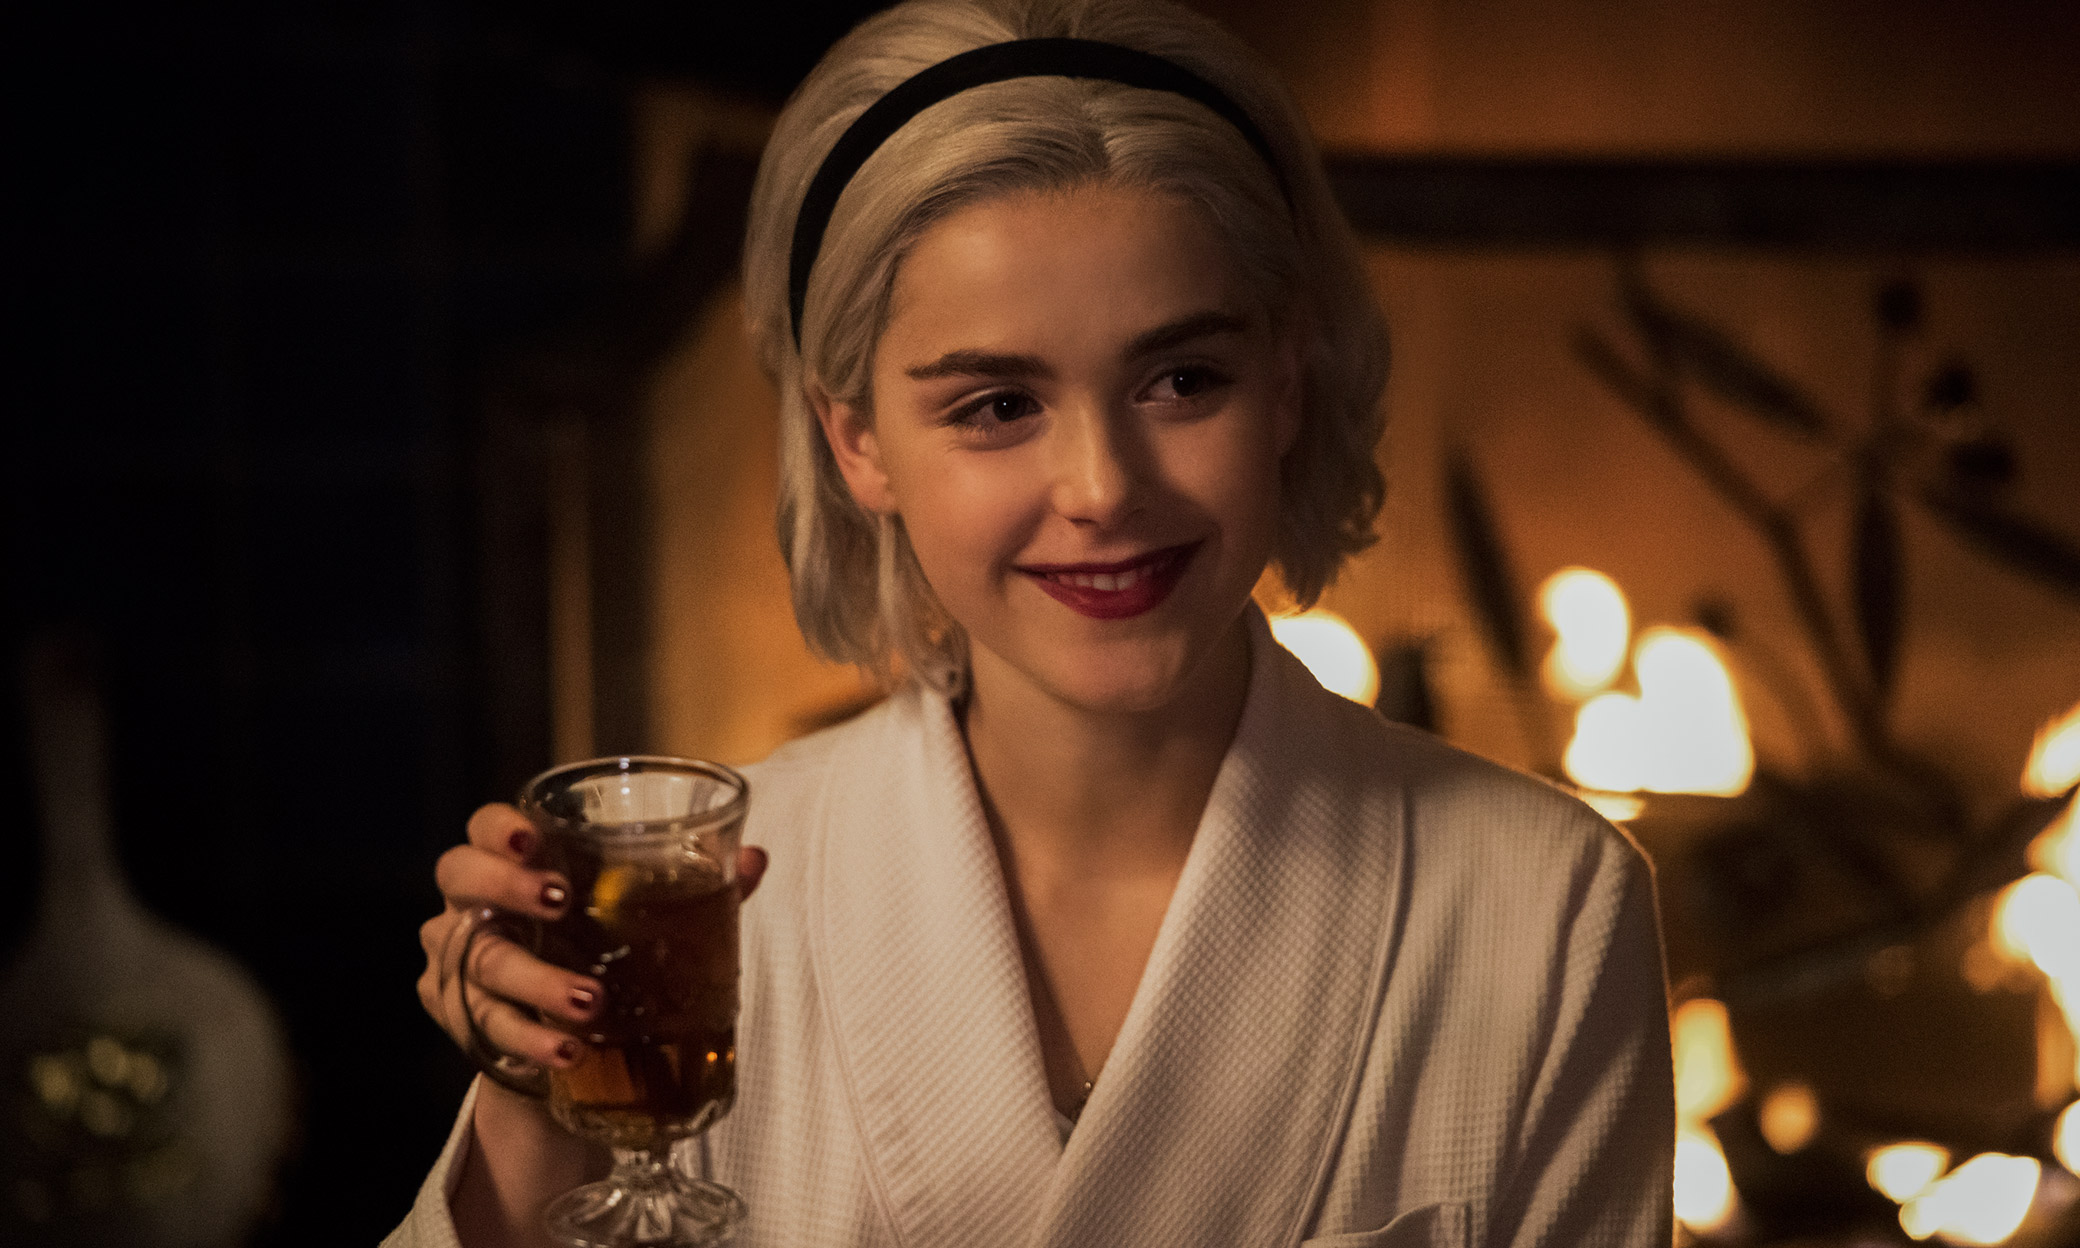 watch The Chilling Adventures Of Sabrina. Netflix this weekend 1